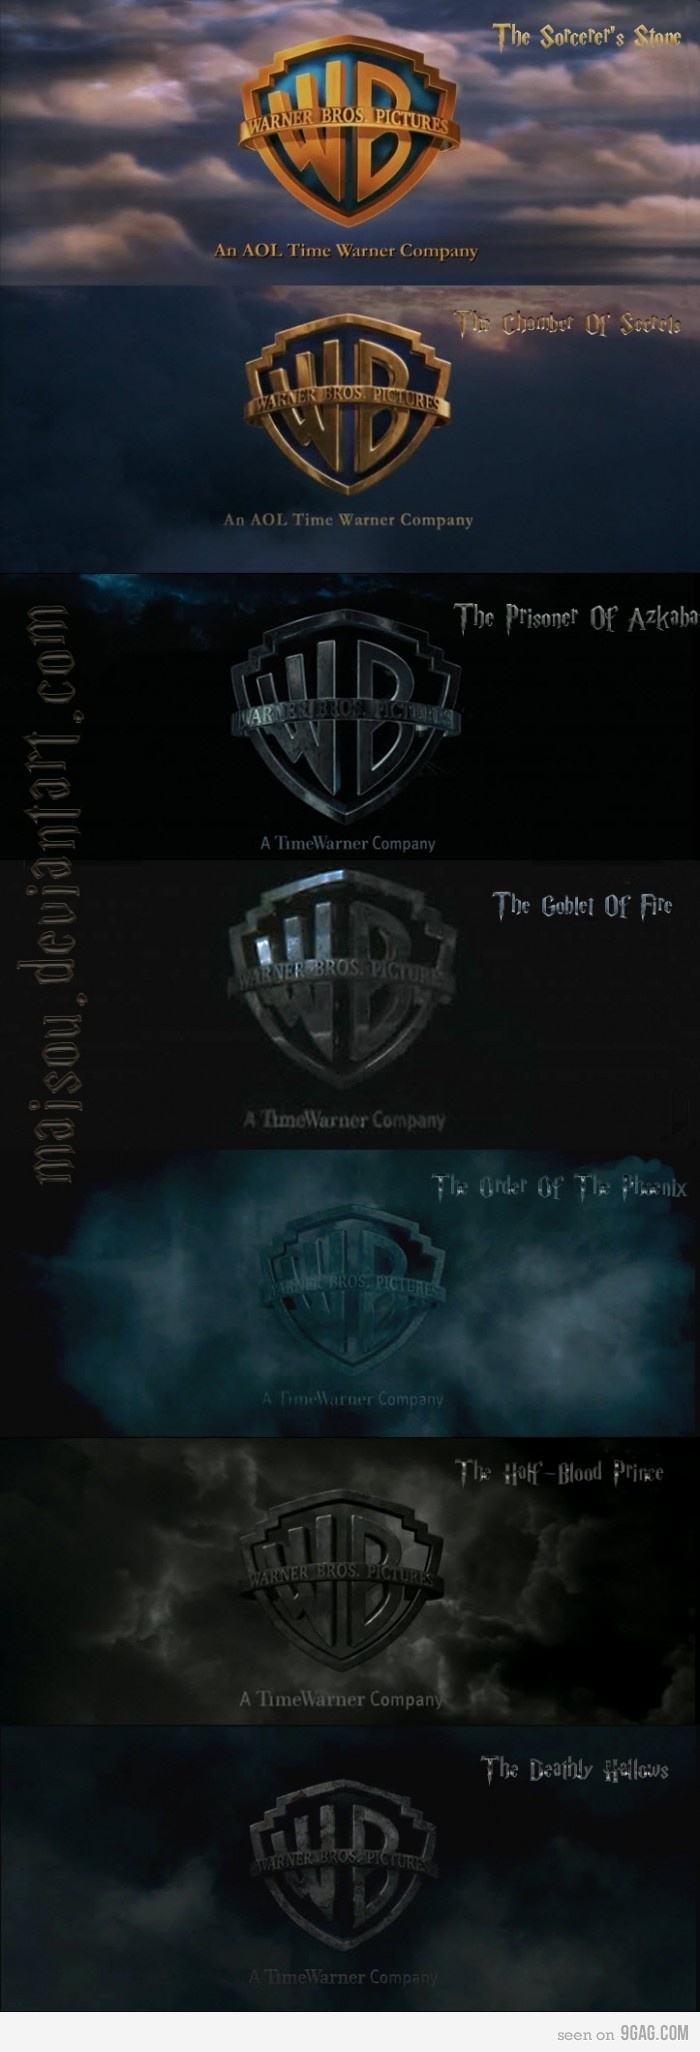 Warner Bros  | Harry Potter Wiki | FANDOM powered by Wikia